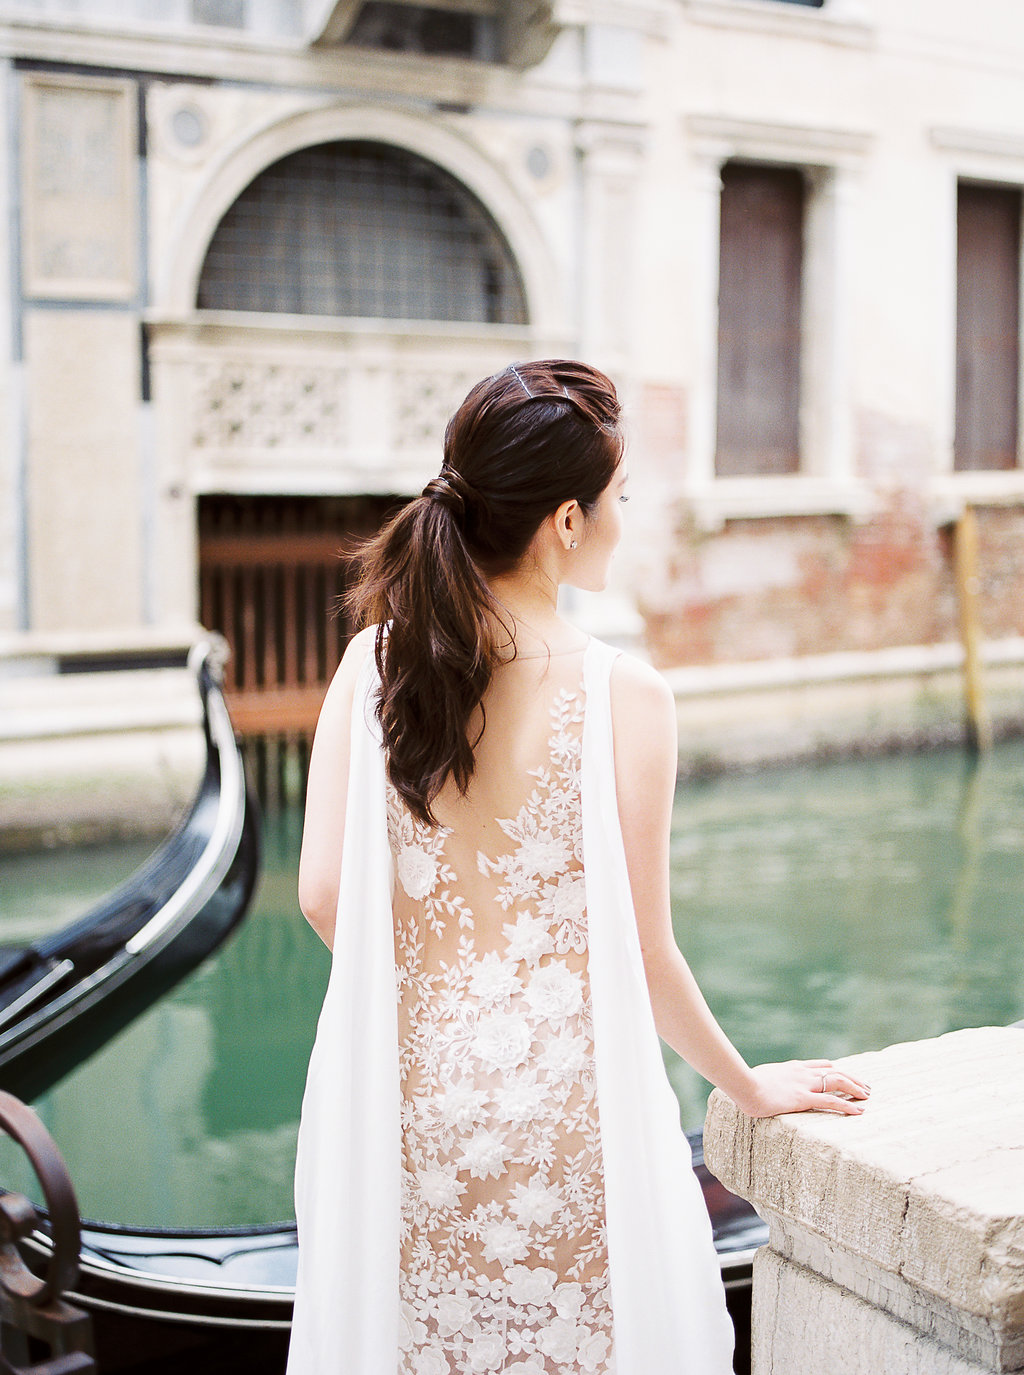 Destination pre-wedding session in Venice Italy | Tanja Kibogo photography4.JPG